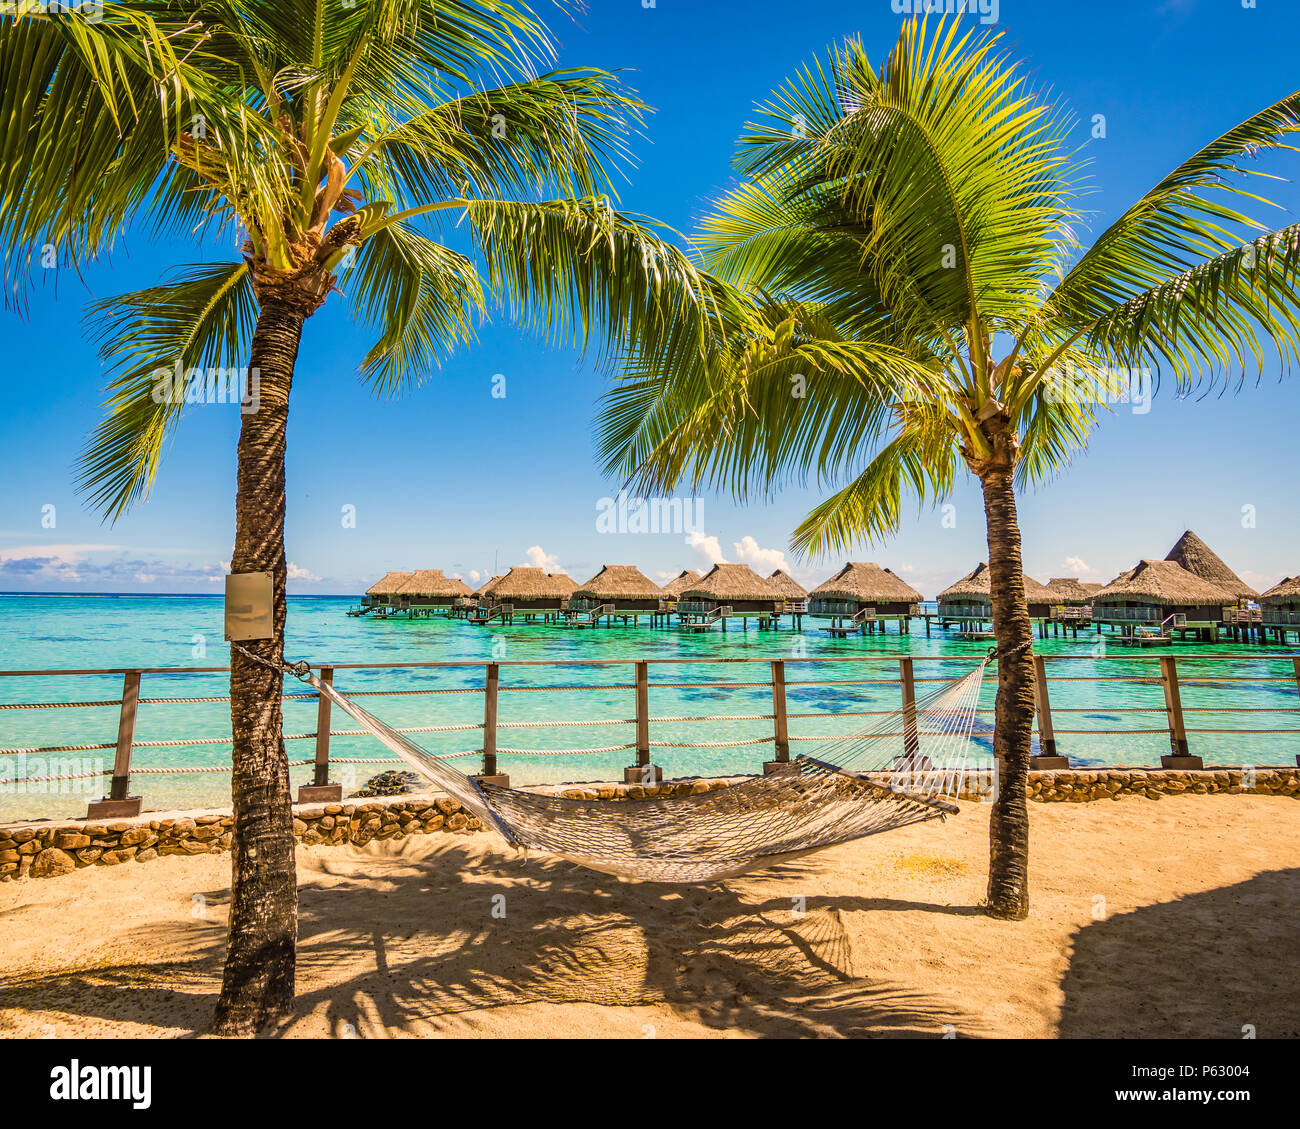 Hammock between palm trees on the beach. Summer vacation concept. - Stock Image